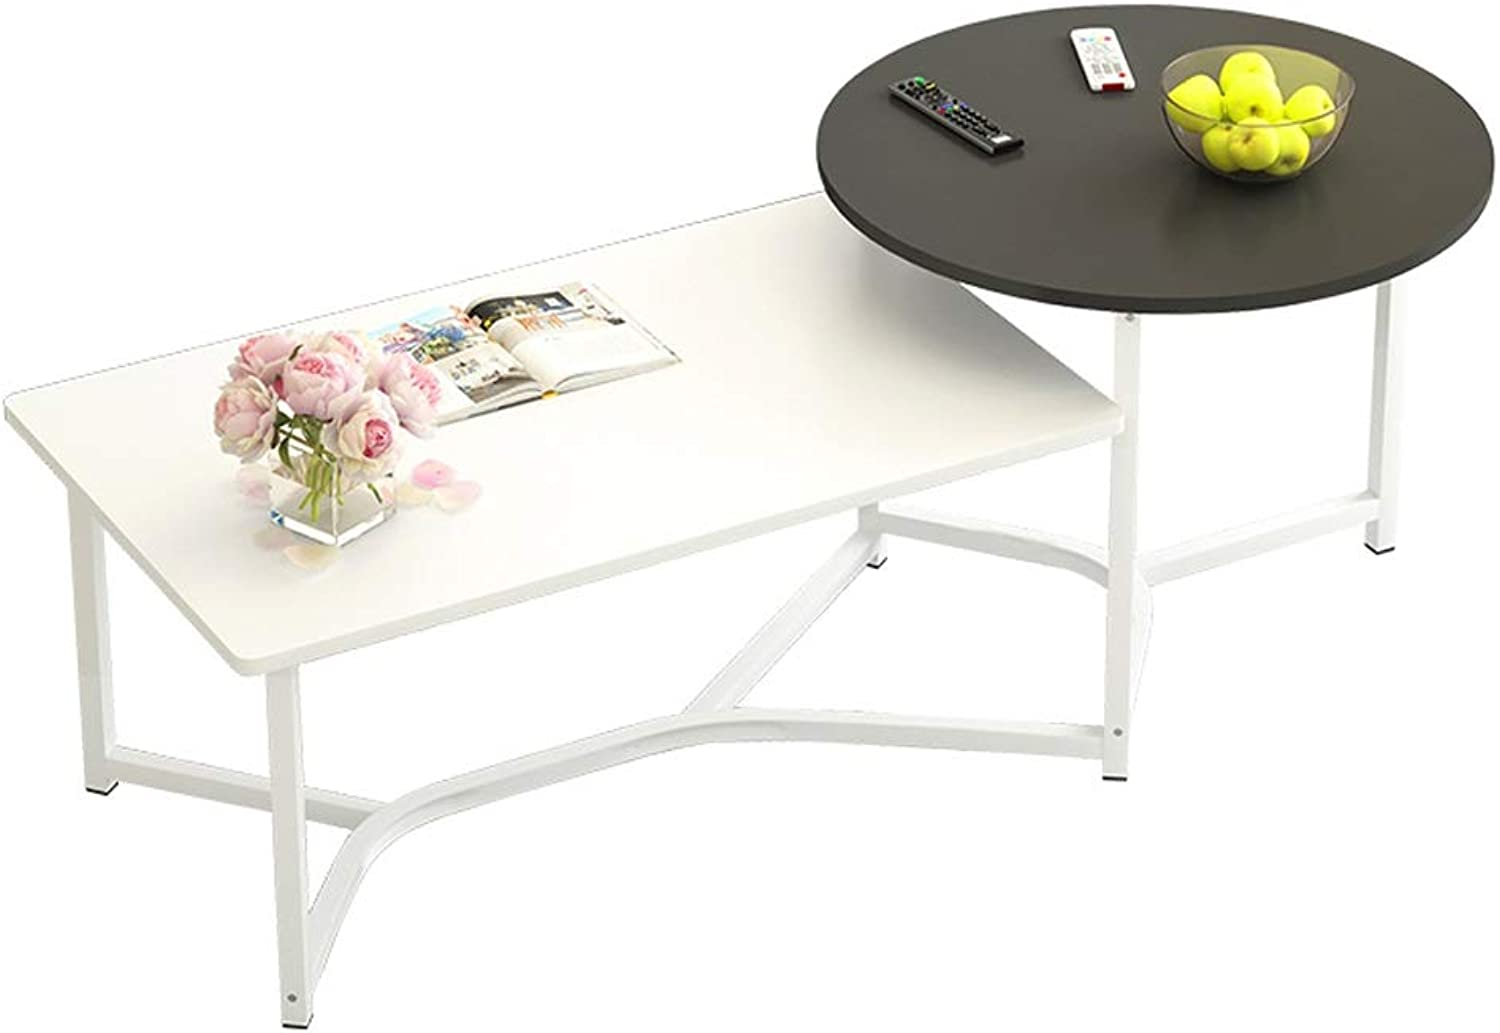 Creative Nordic Coffee Table Simple Tea Table Tea Table Modern Small Apartment Living Room Square Small Table Economy Side Table 120x50x40cm ==